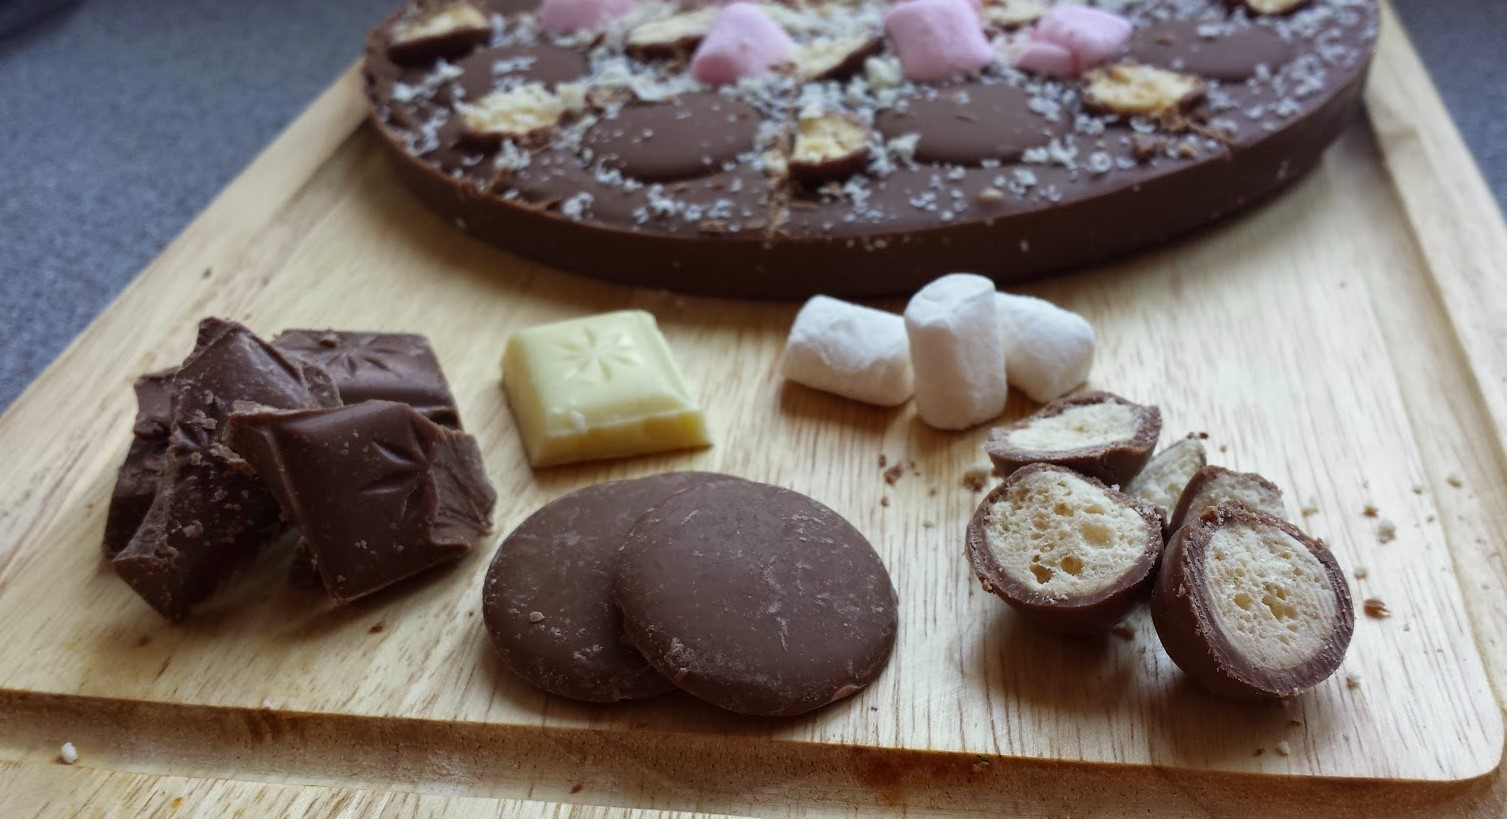 Rocky road chocolate pizza with toppings